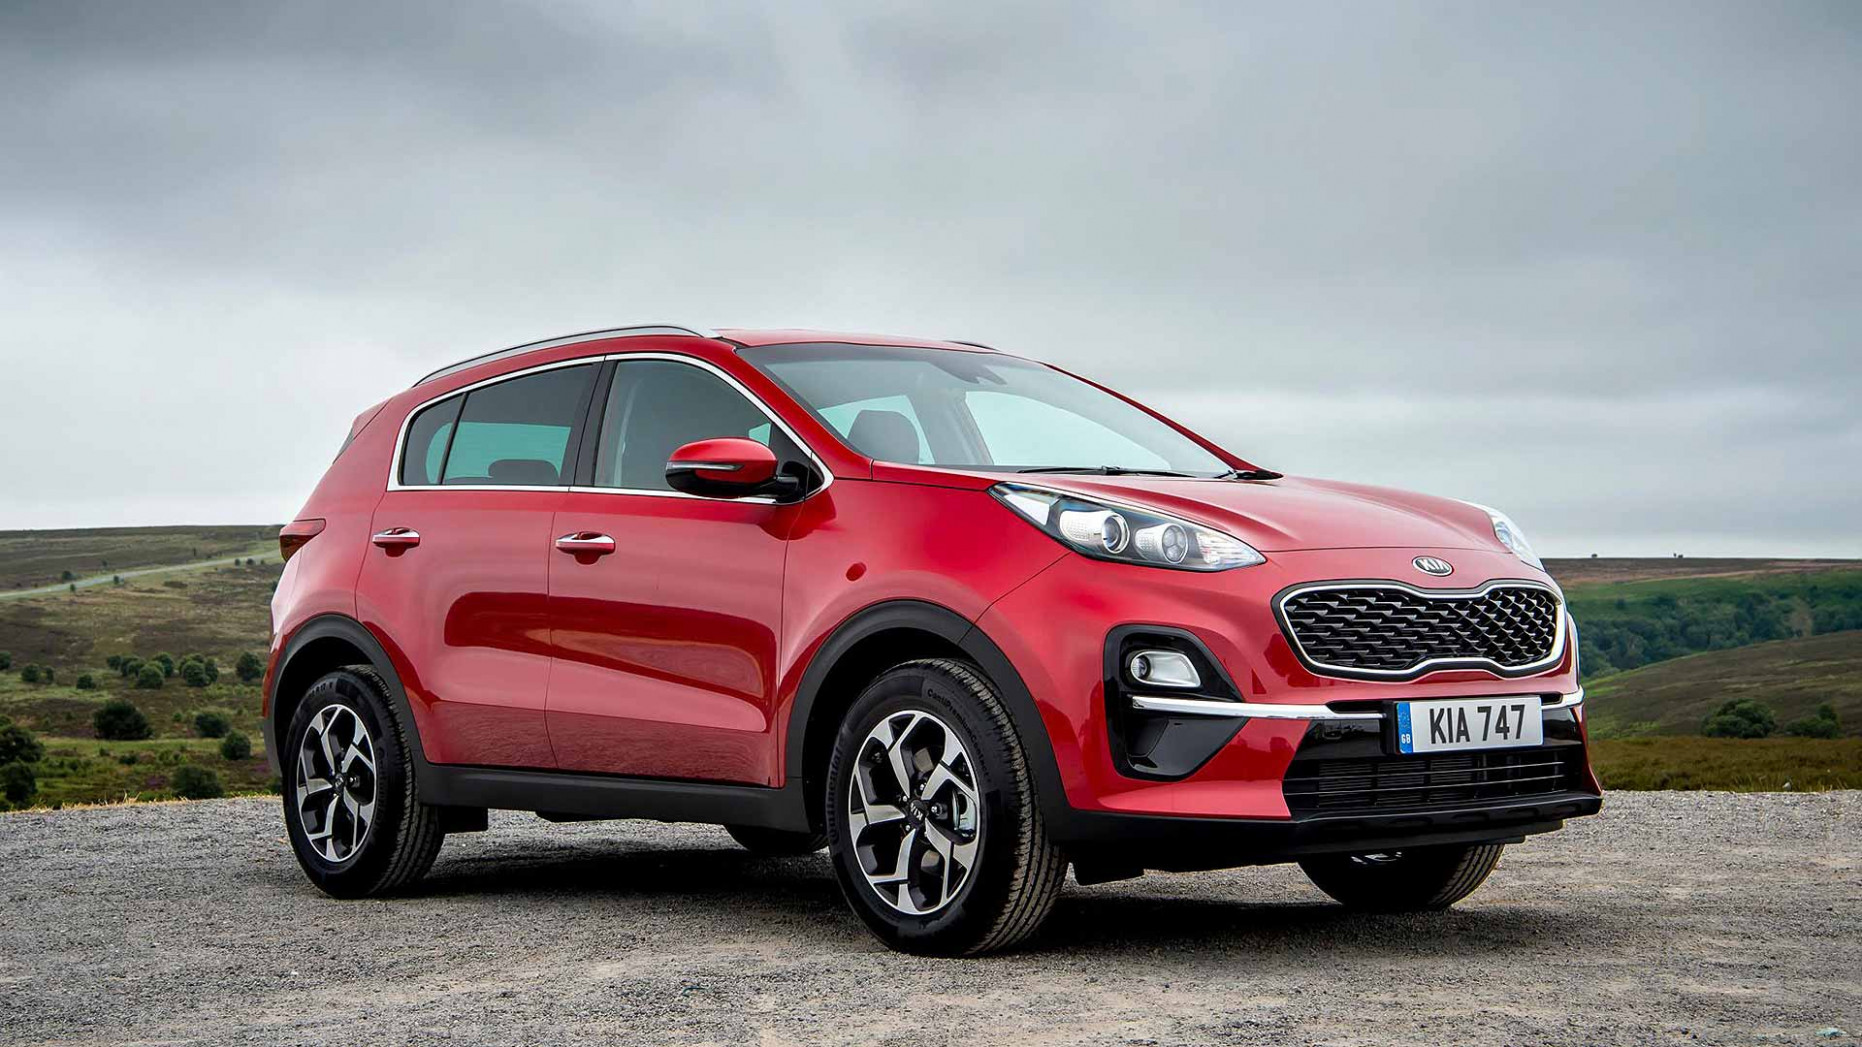 Kia 11 Event offers Sportage from £11 a month – interest free ...